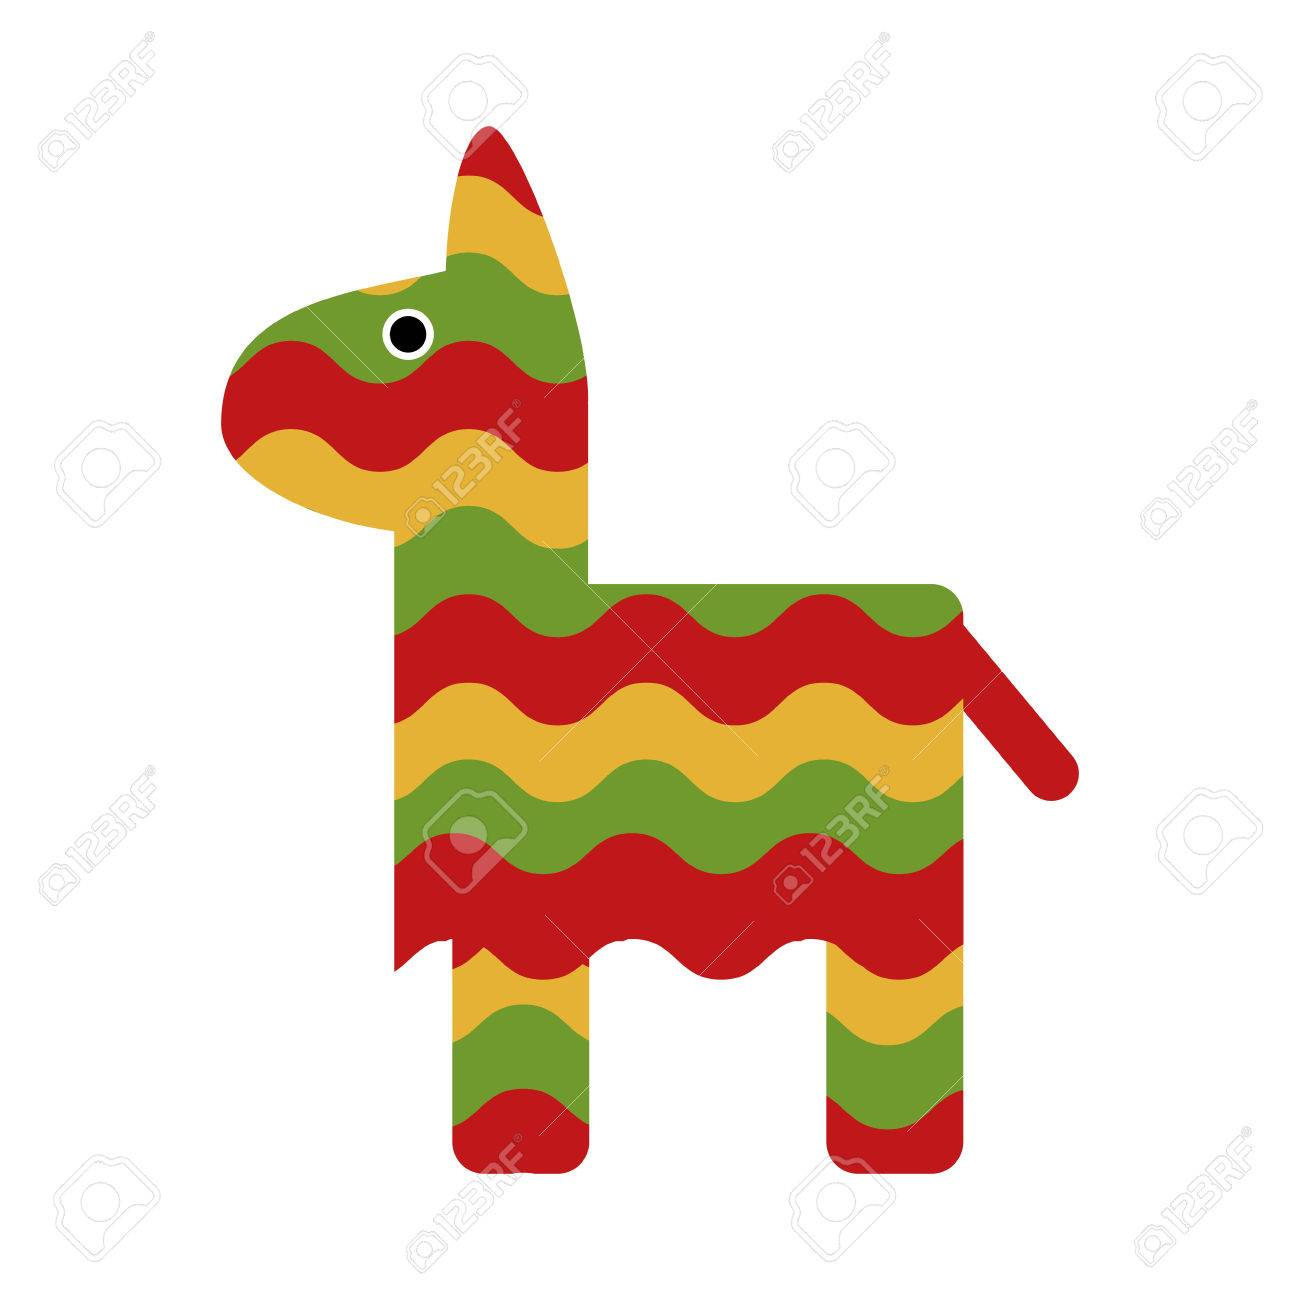 pinata icon mexican culture tourism landmark and latin theme